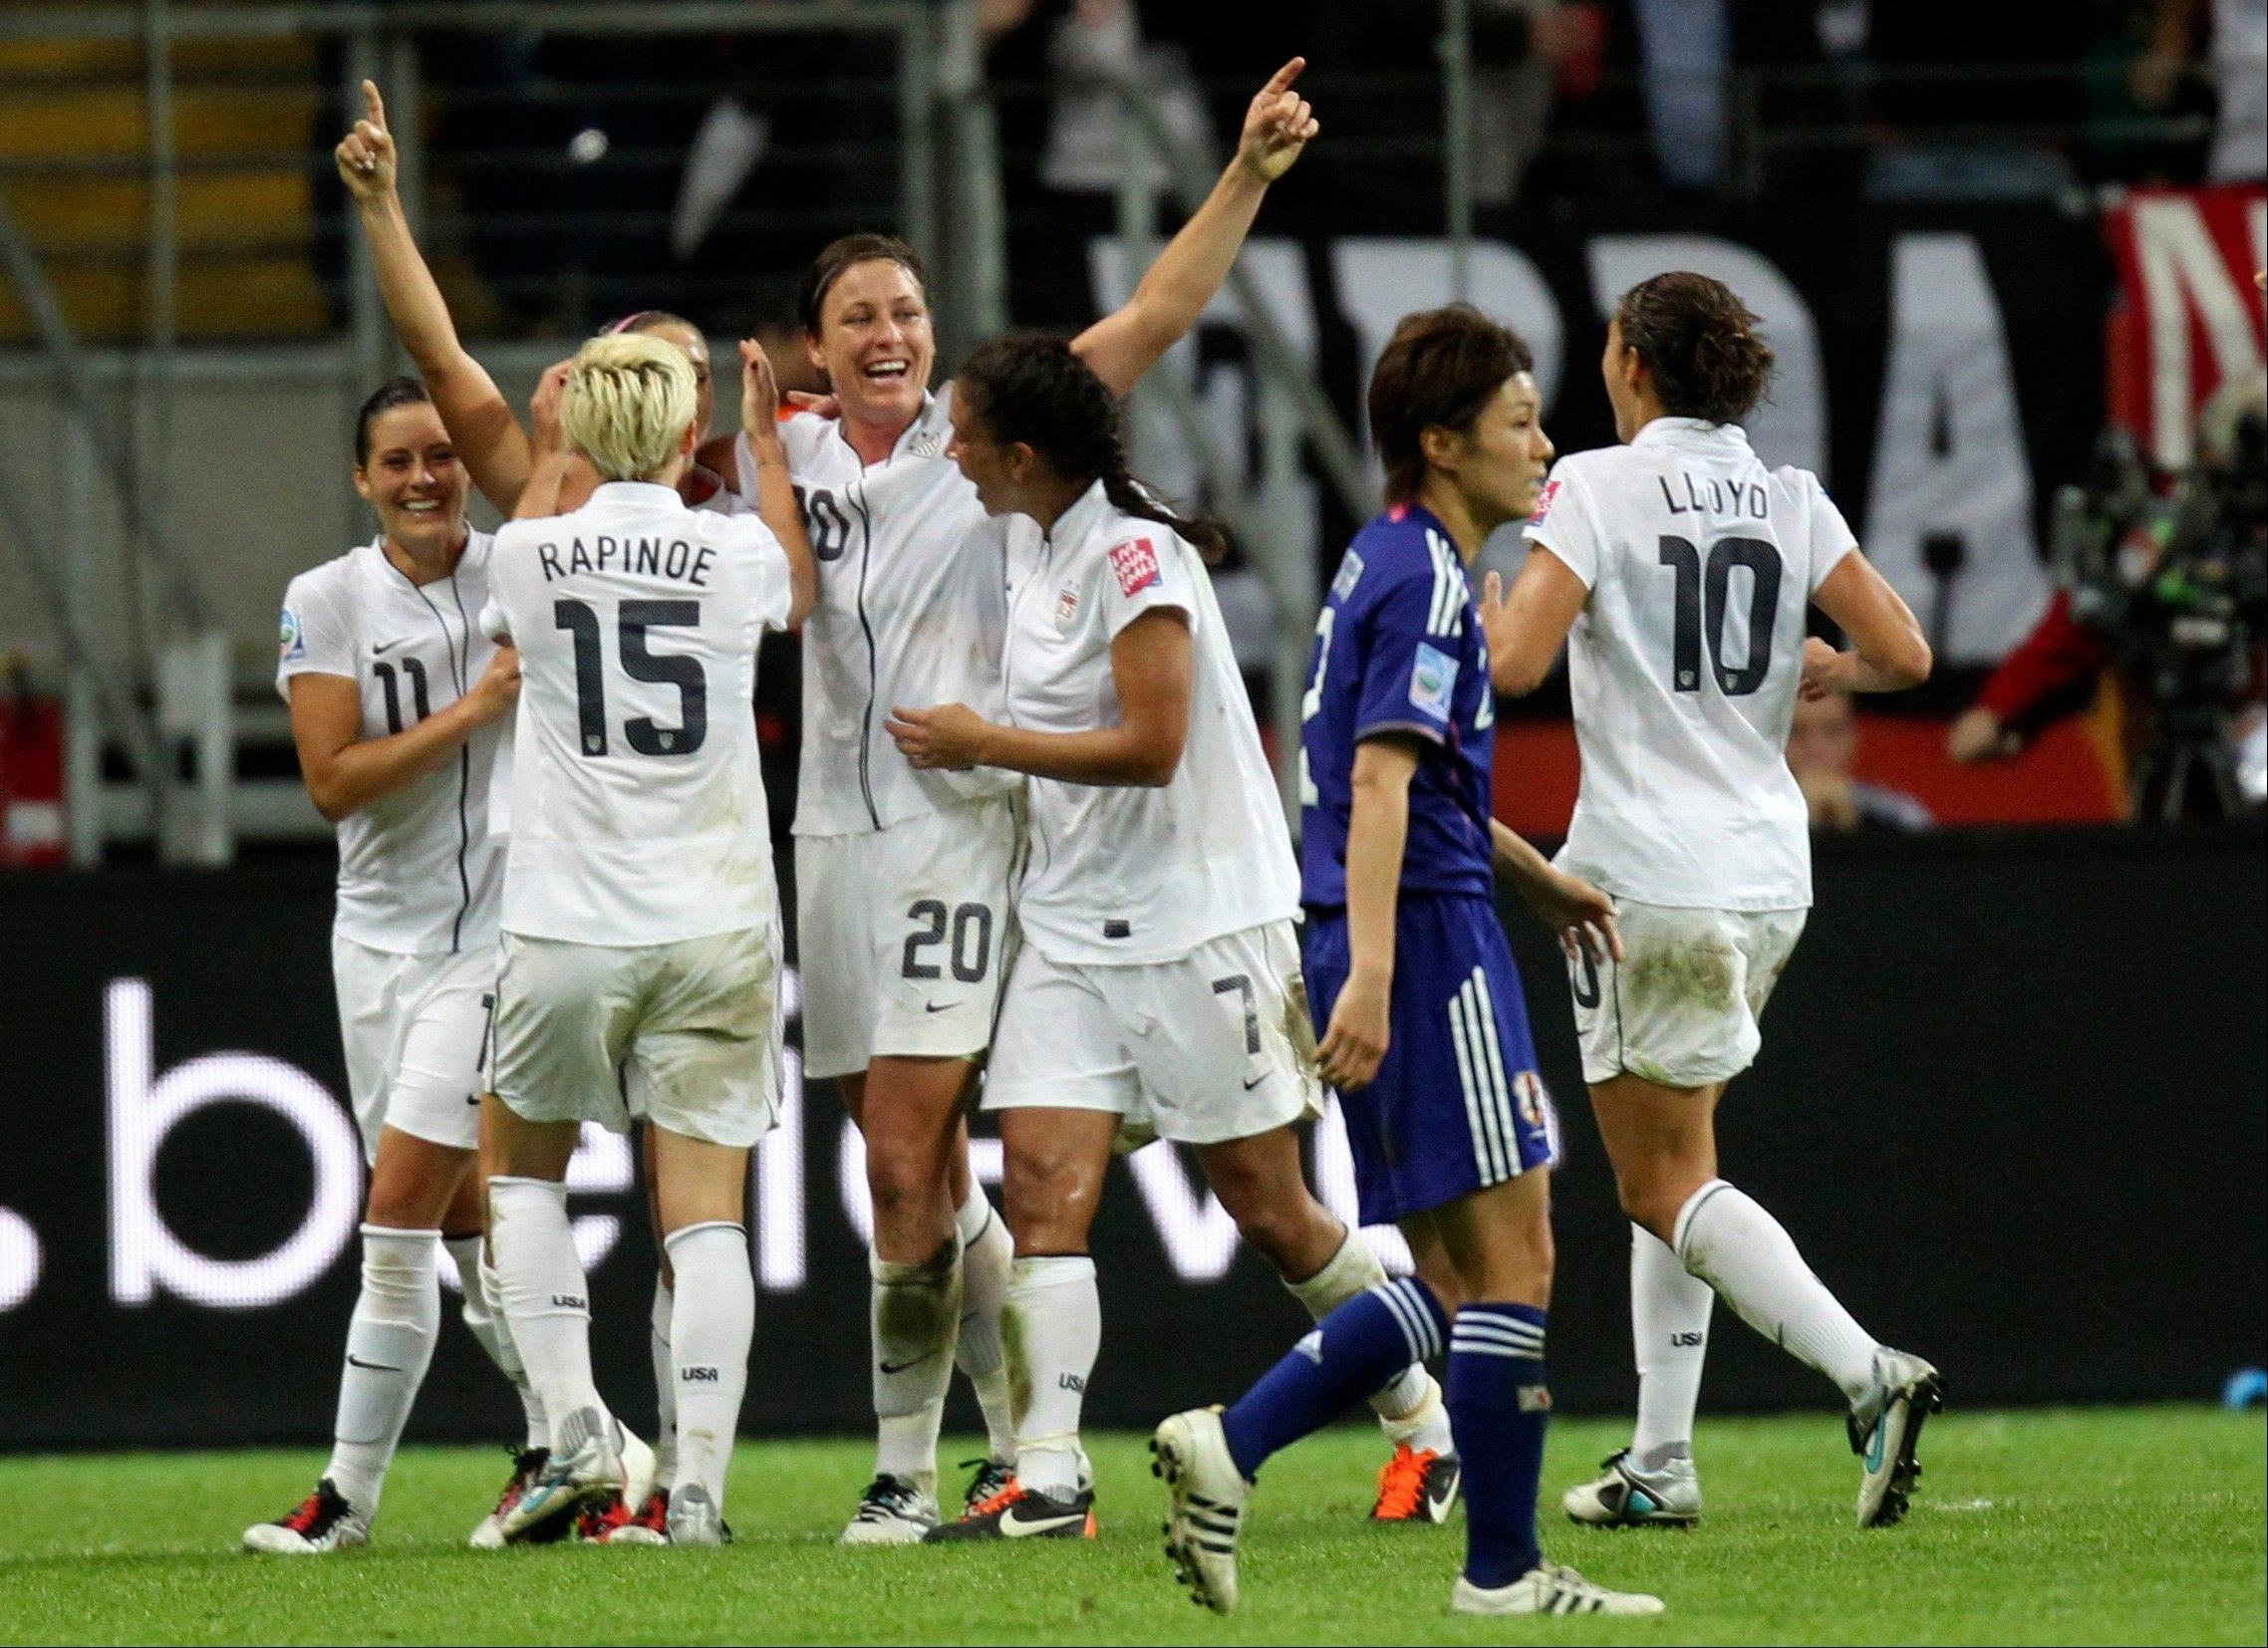 U.S. players celebrate scoring the opening goal Sunday during the final match between Japan and the United States at the Women's Soccer World Cup in Frankfurt, Germany. Japan would go on to win after penalty kicks.